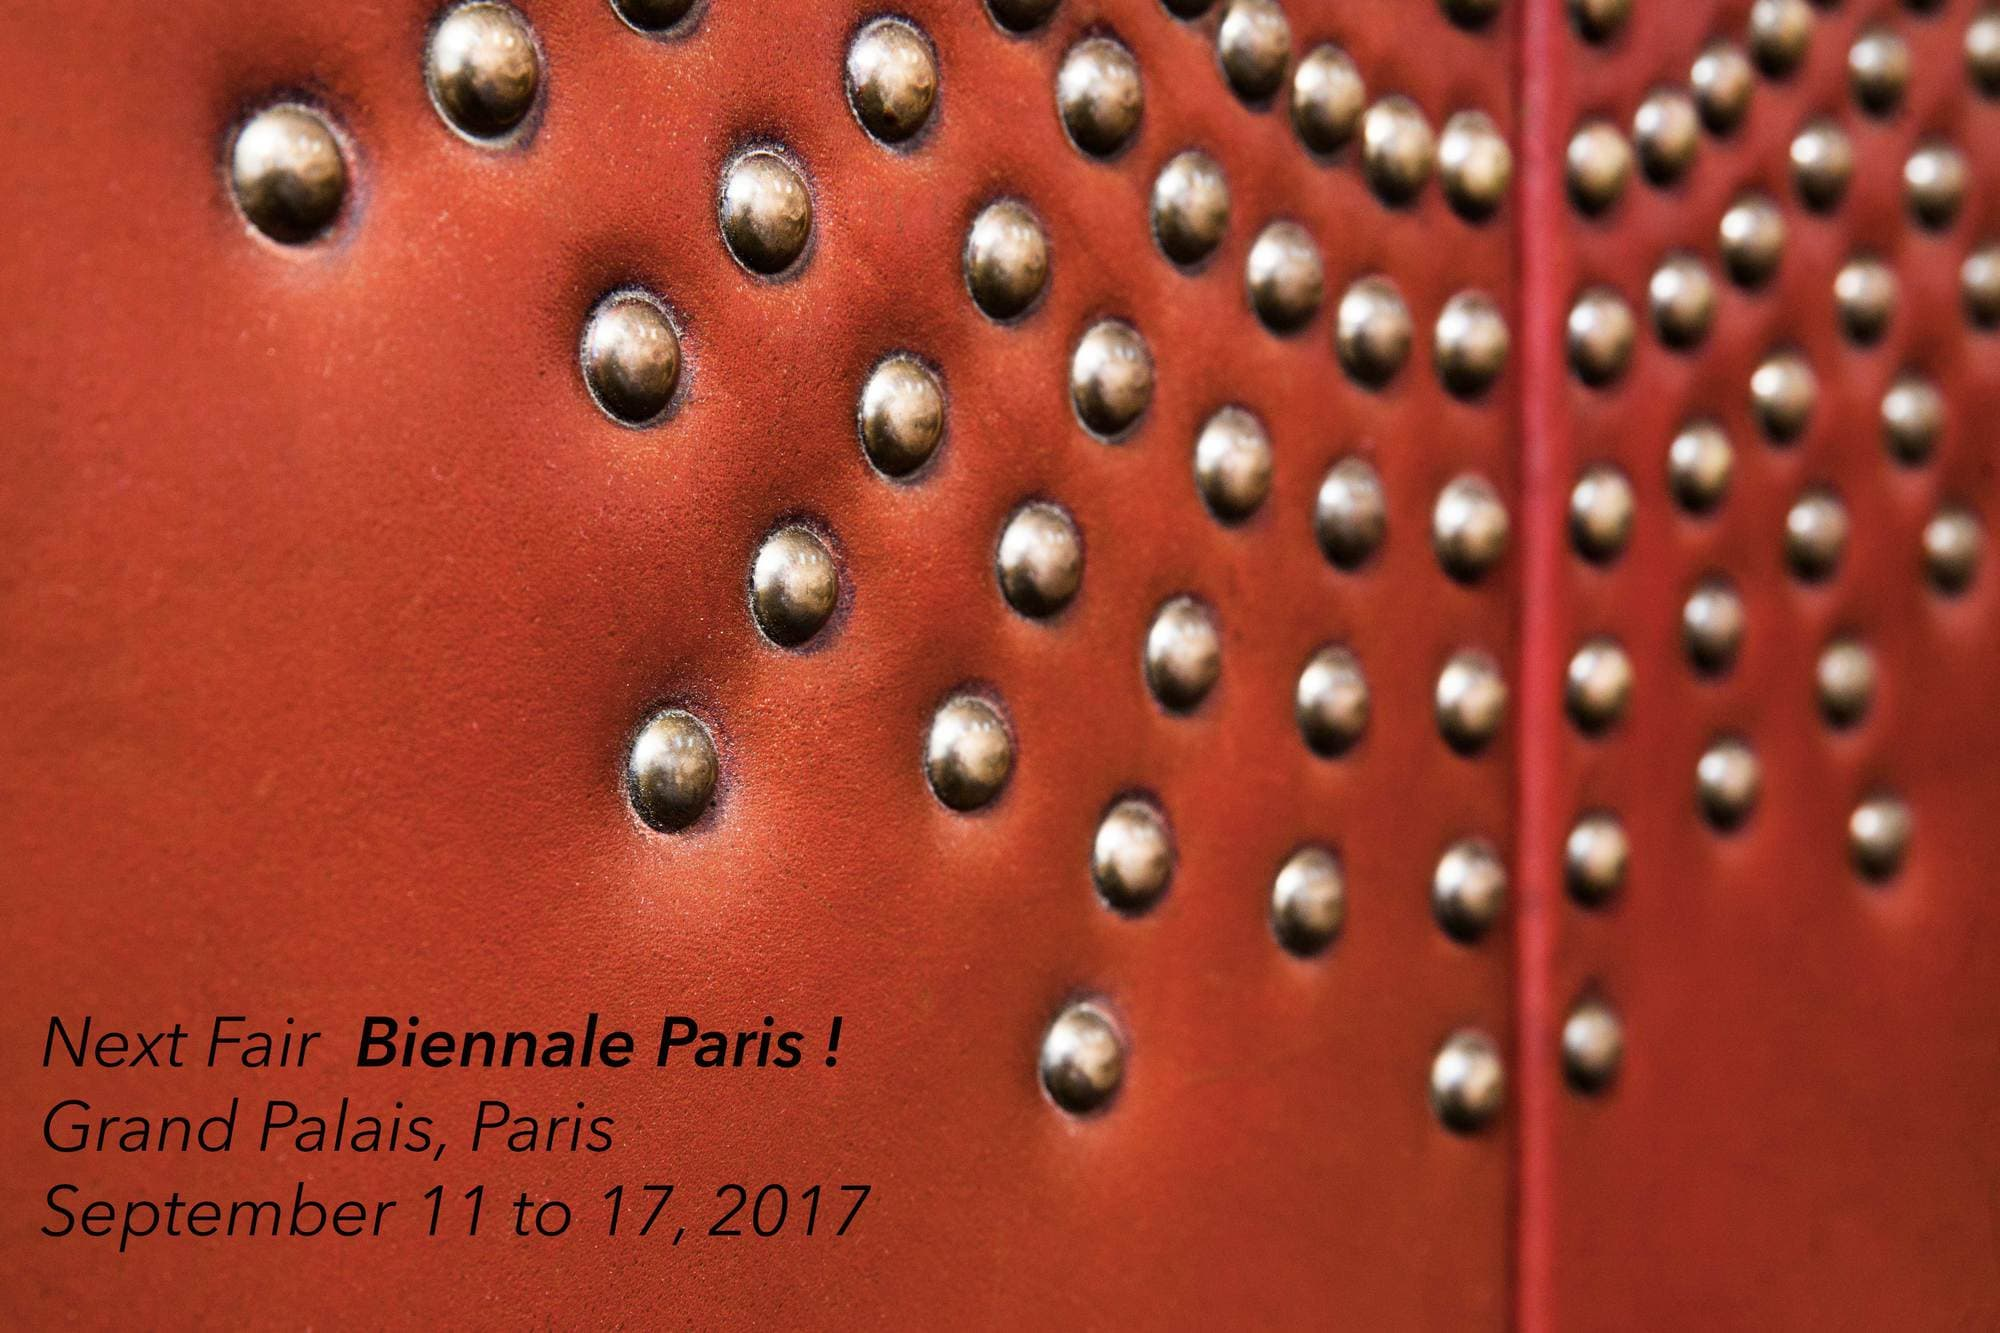 La Biennale Paris from Septembre 11 to 17, 2017